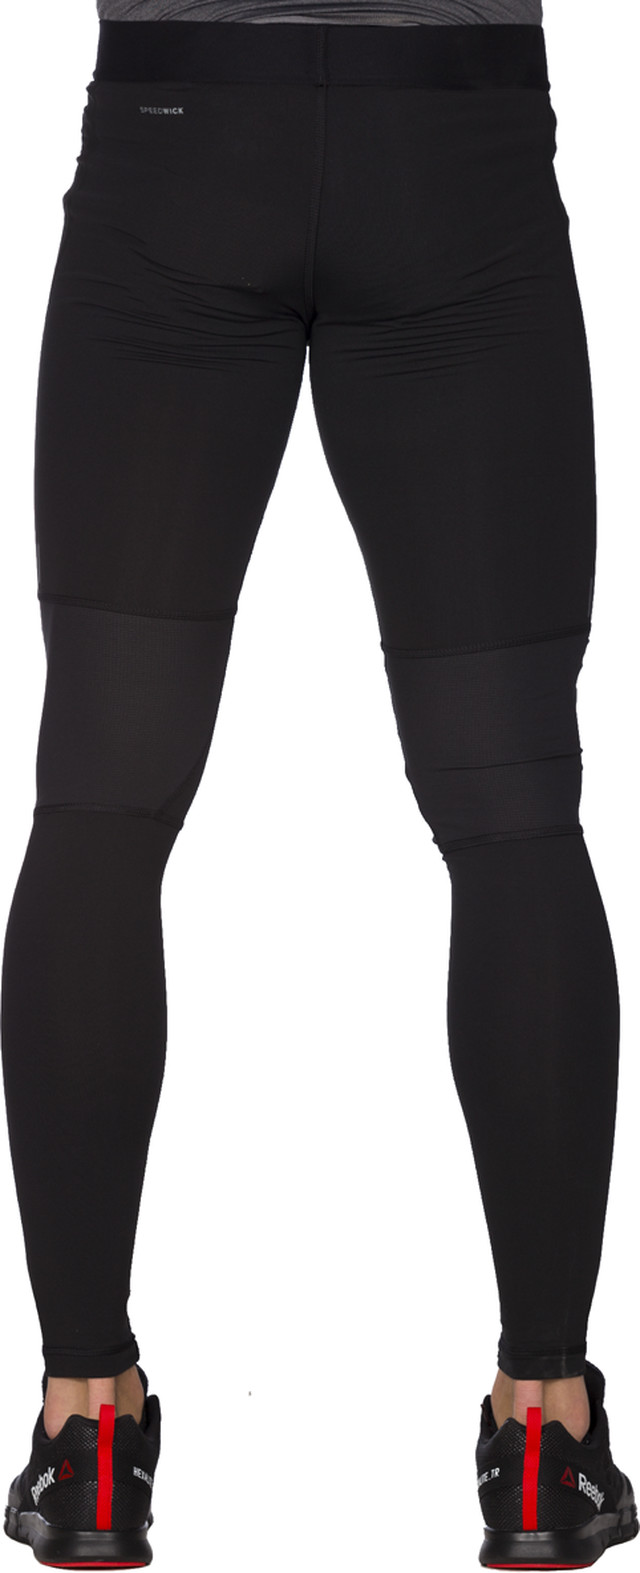 48d2a48a90b7 ... Legginsy Reebok  br   small OS Thrml Tight Black ...